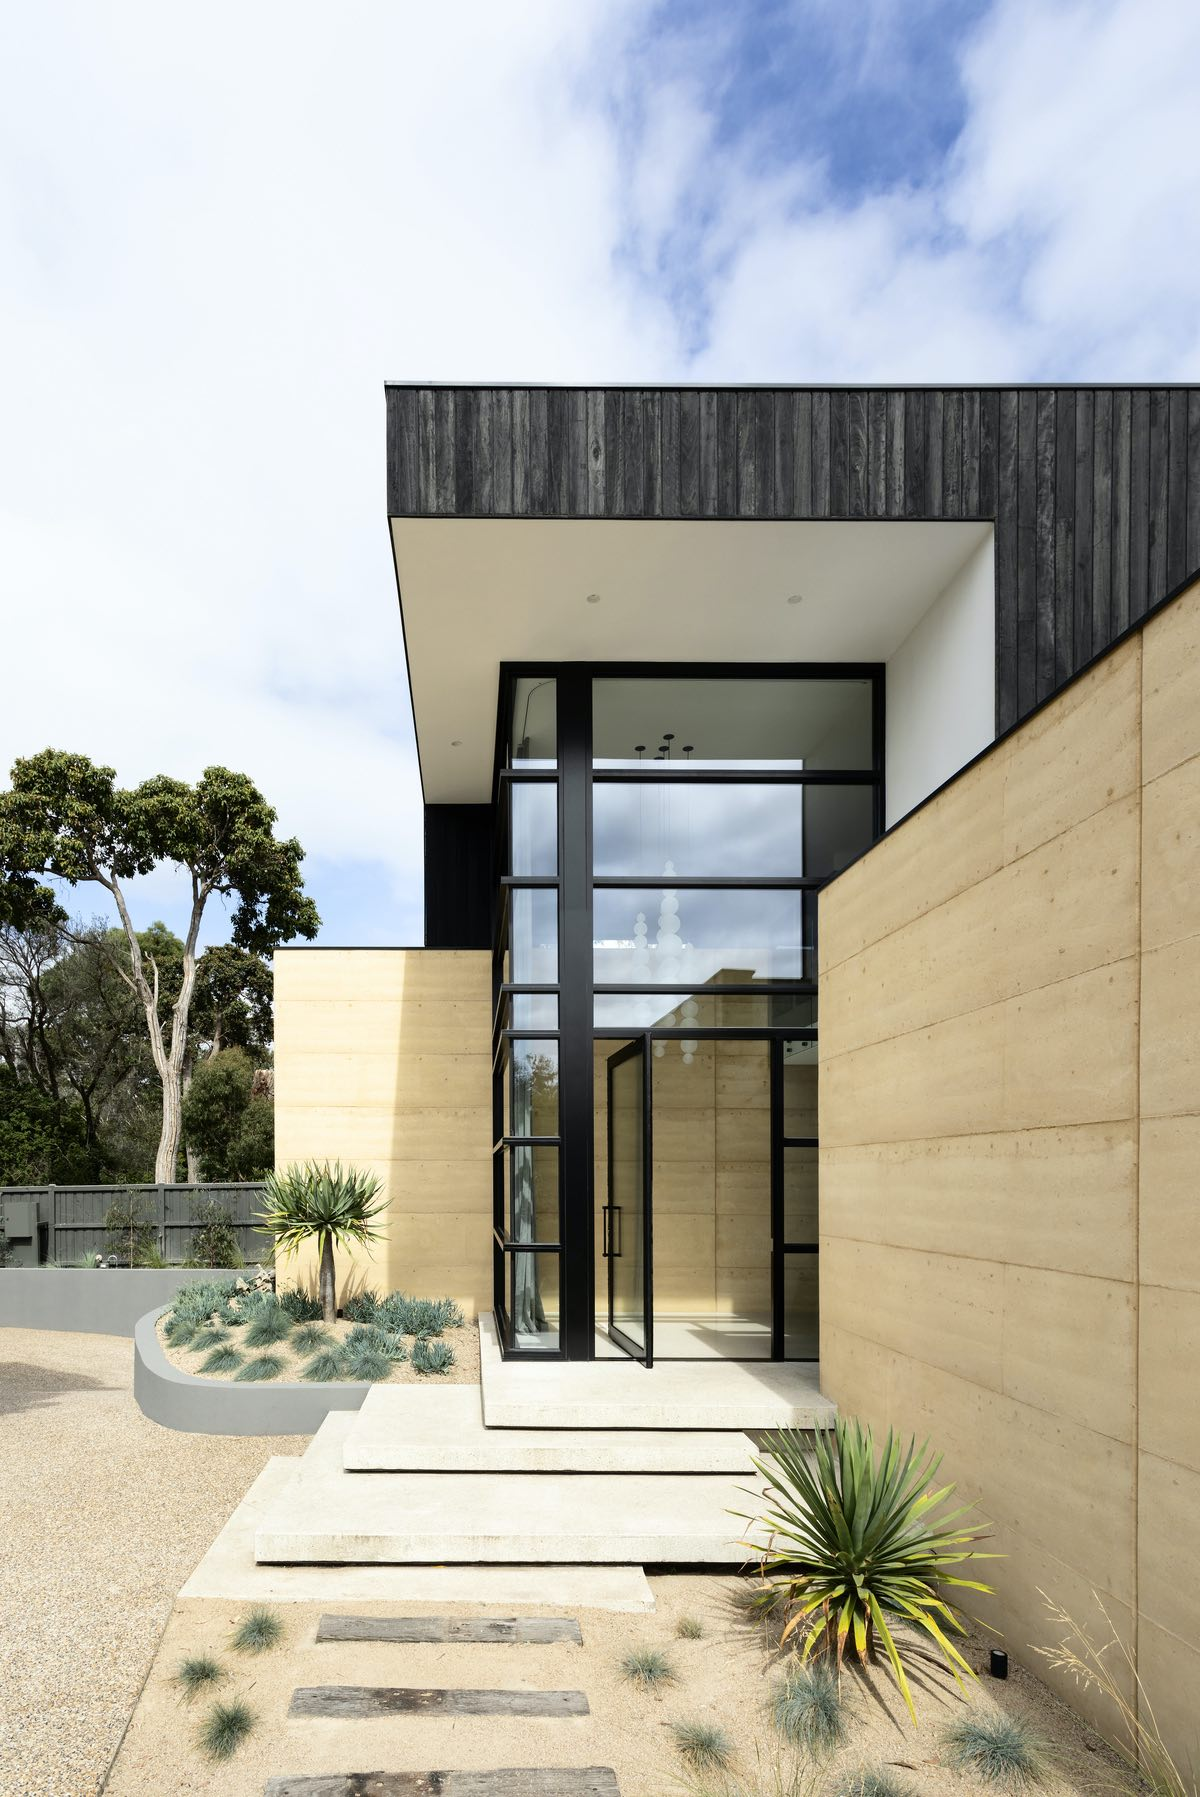 concrete steps with a beautiful landscape at the entrance door